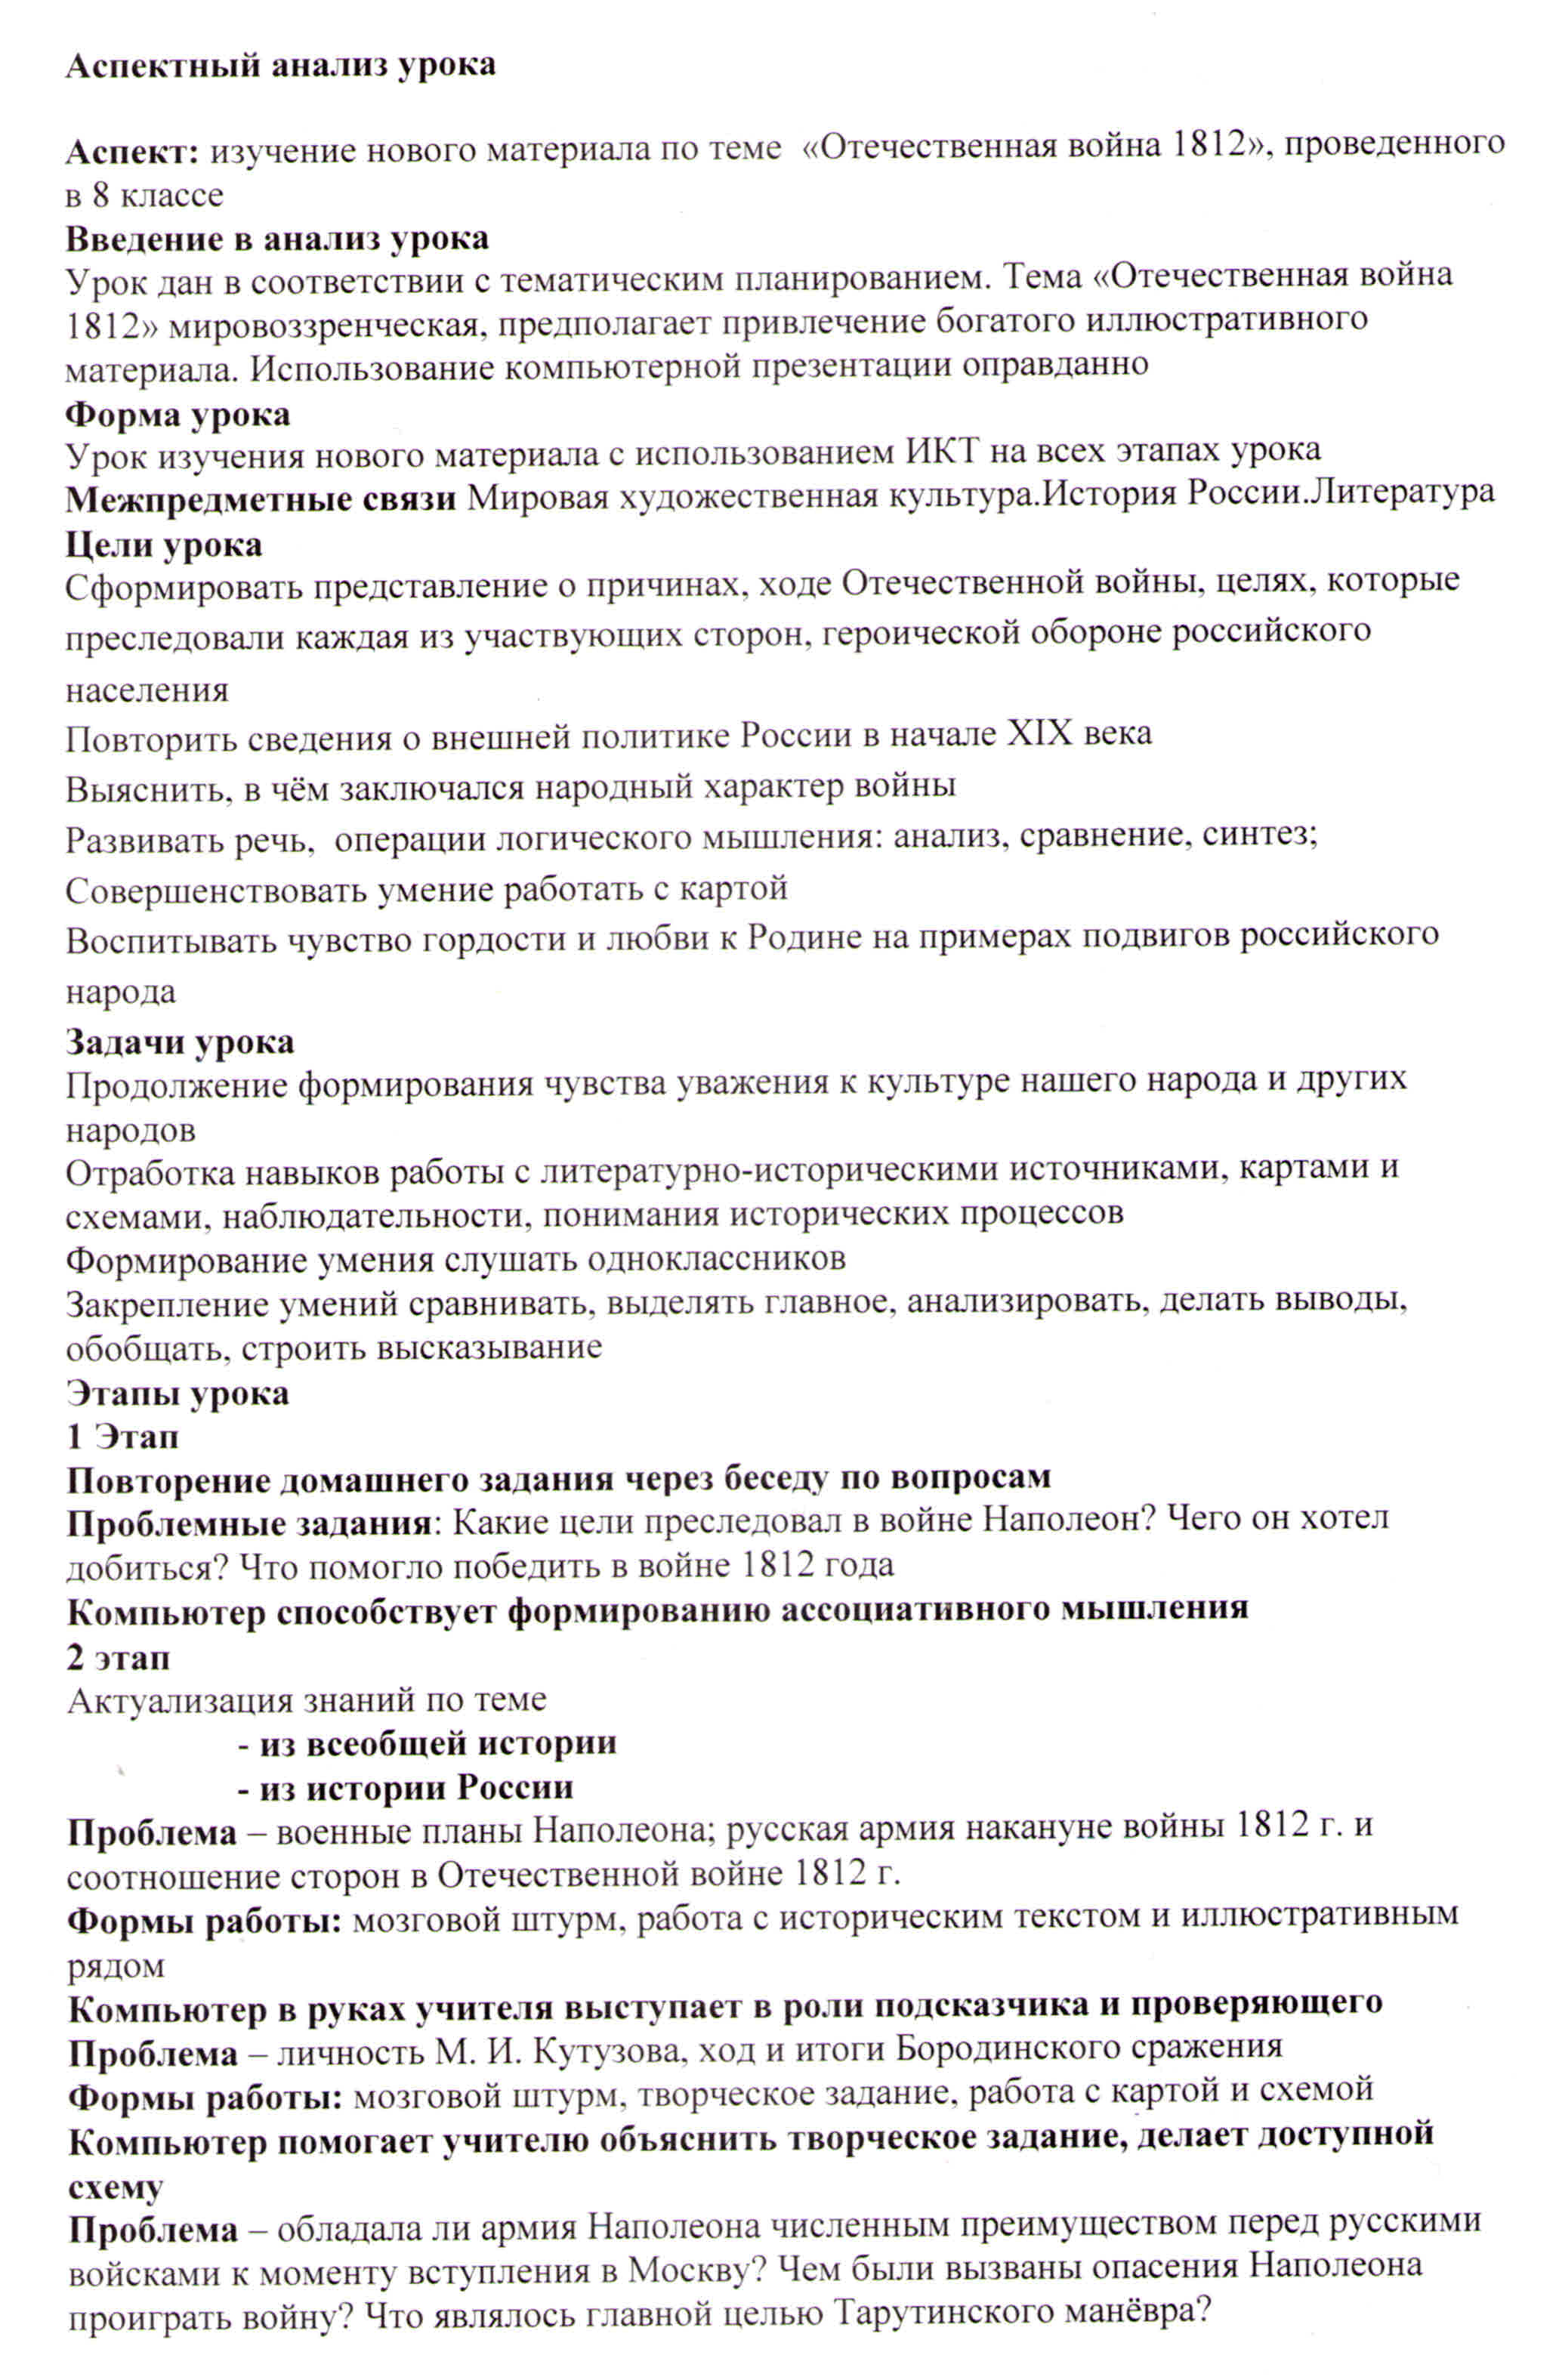 C:\Users\Сергей\Desktop\Document_22.jpg